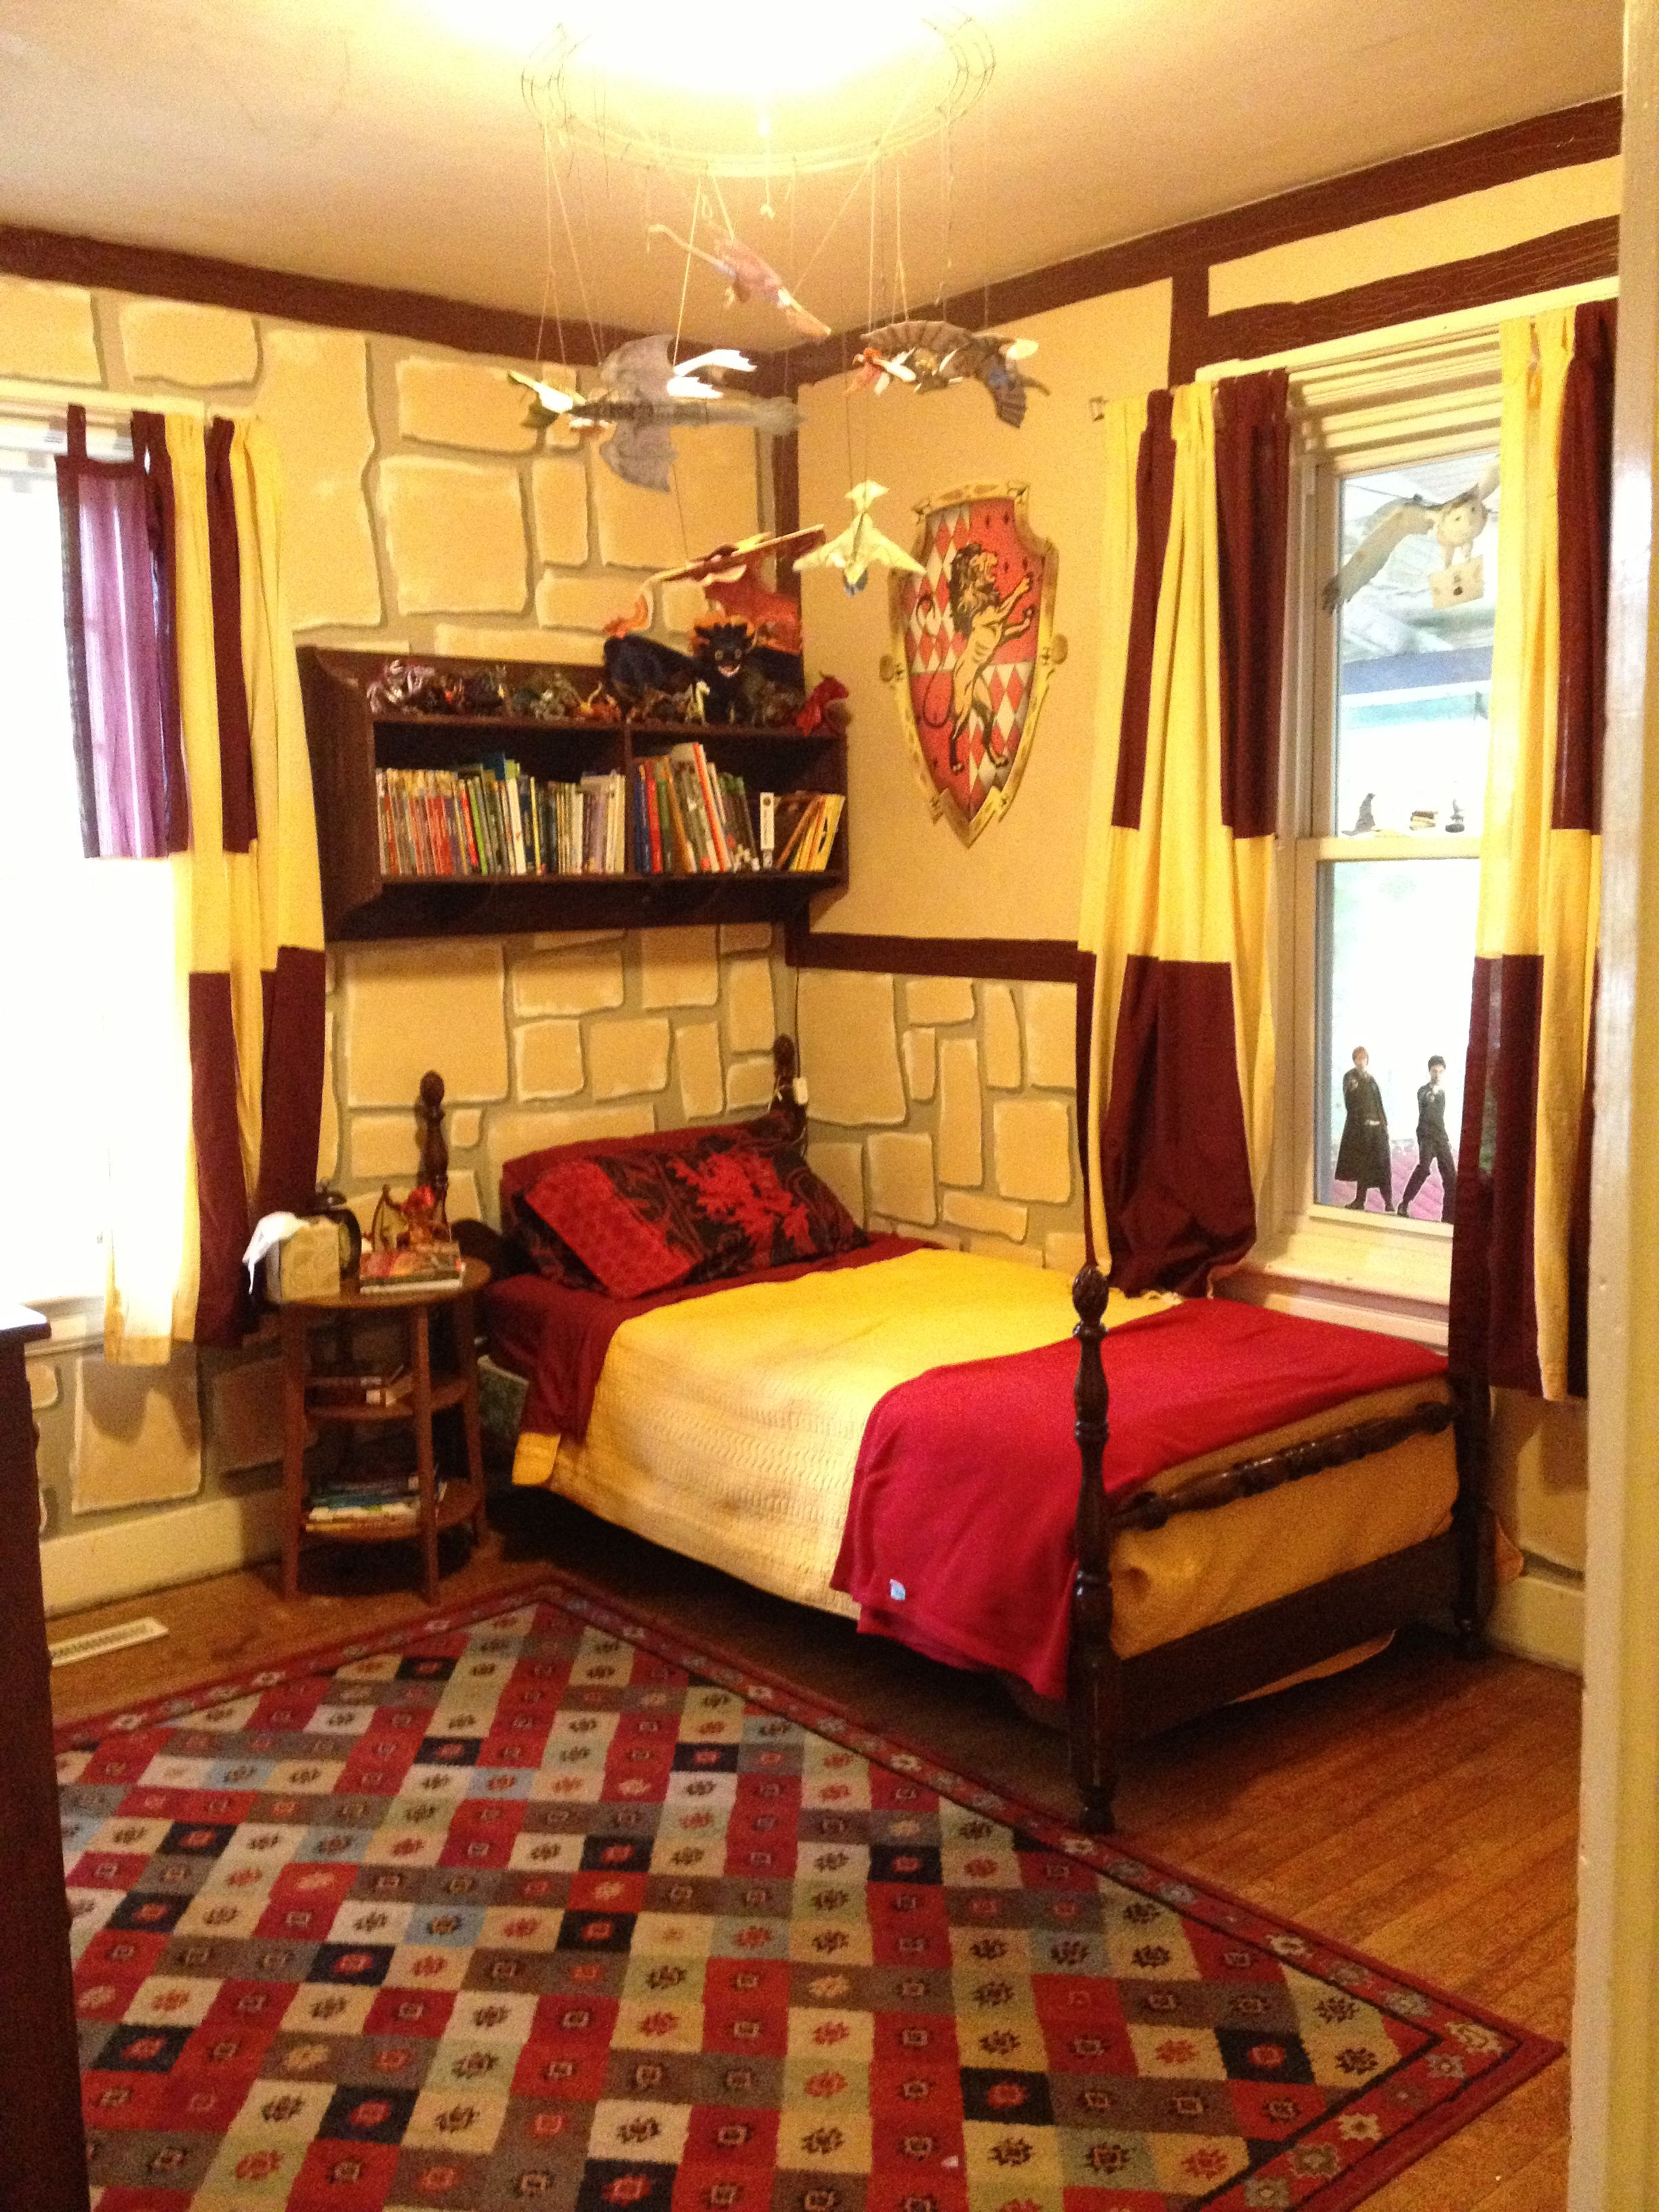 Harry potter gryffindor bedroom im 25 and would still love this